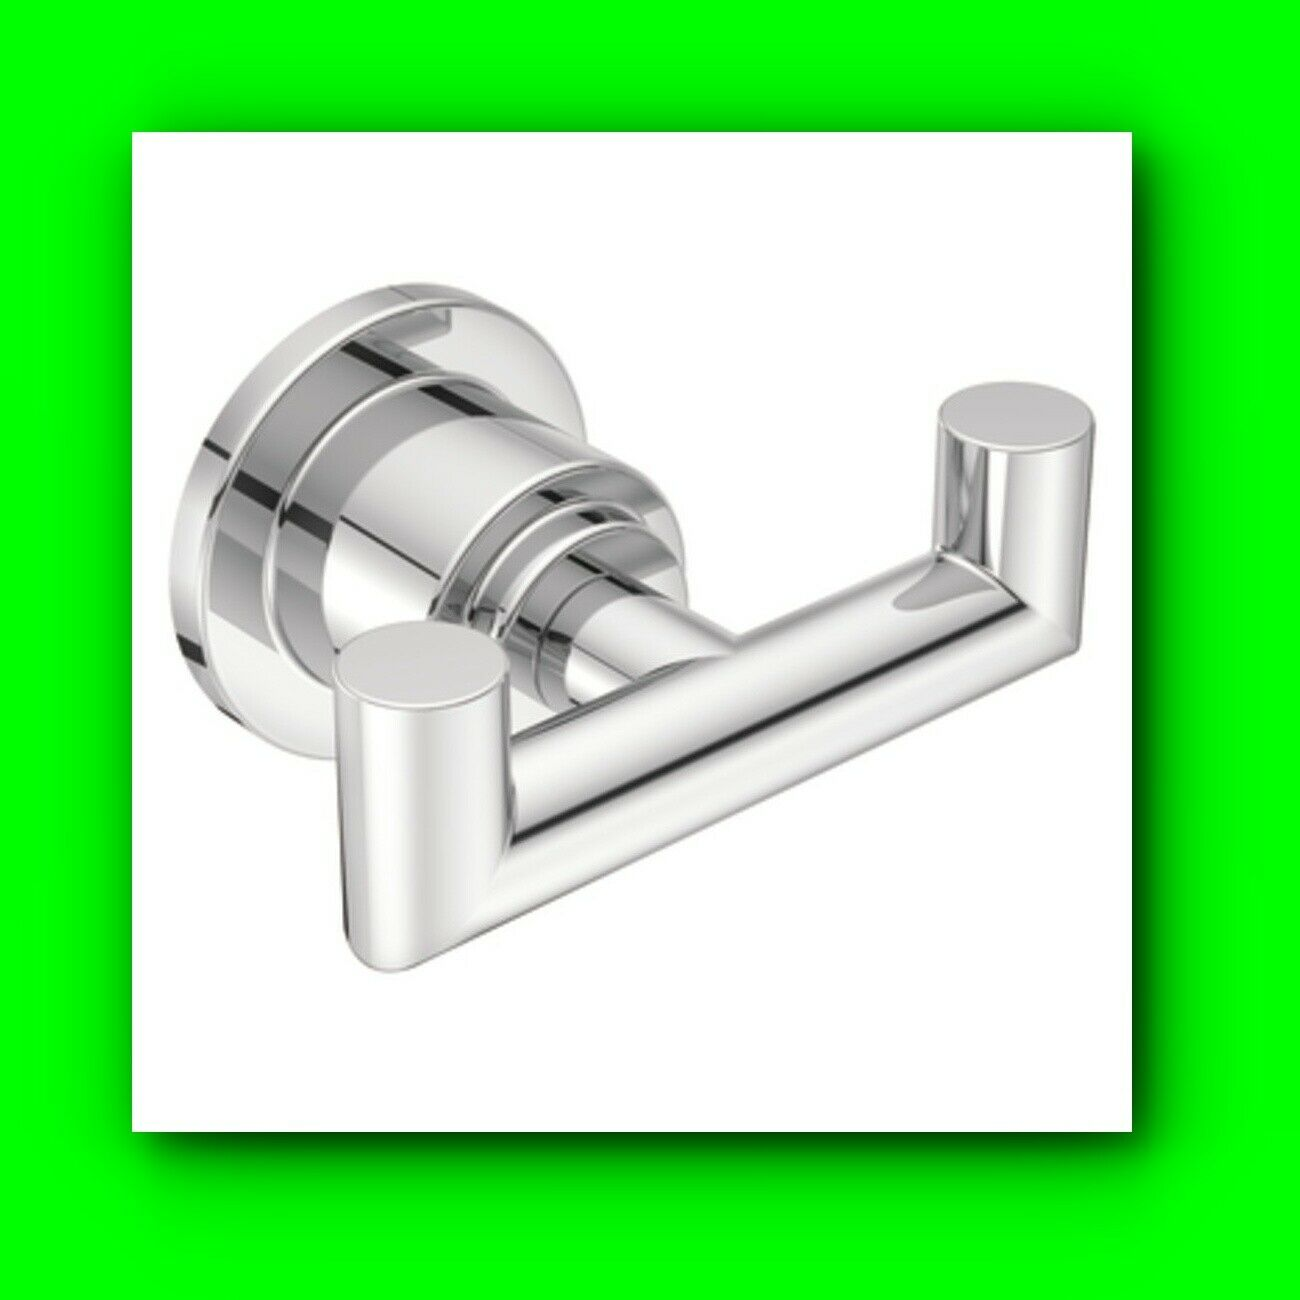 Moen CSIYB0803CH Double Robe Hook from the Arris Collection - Chrome